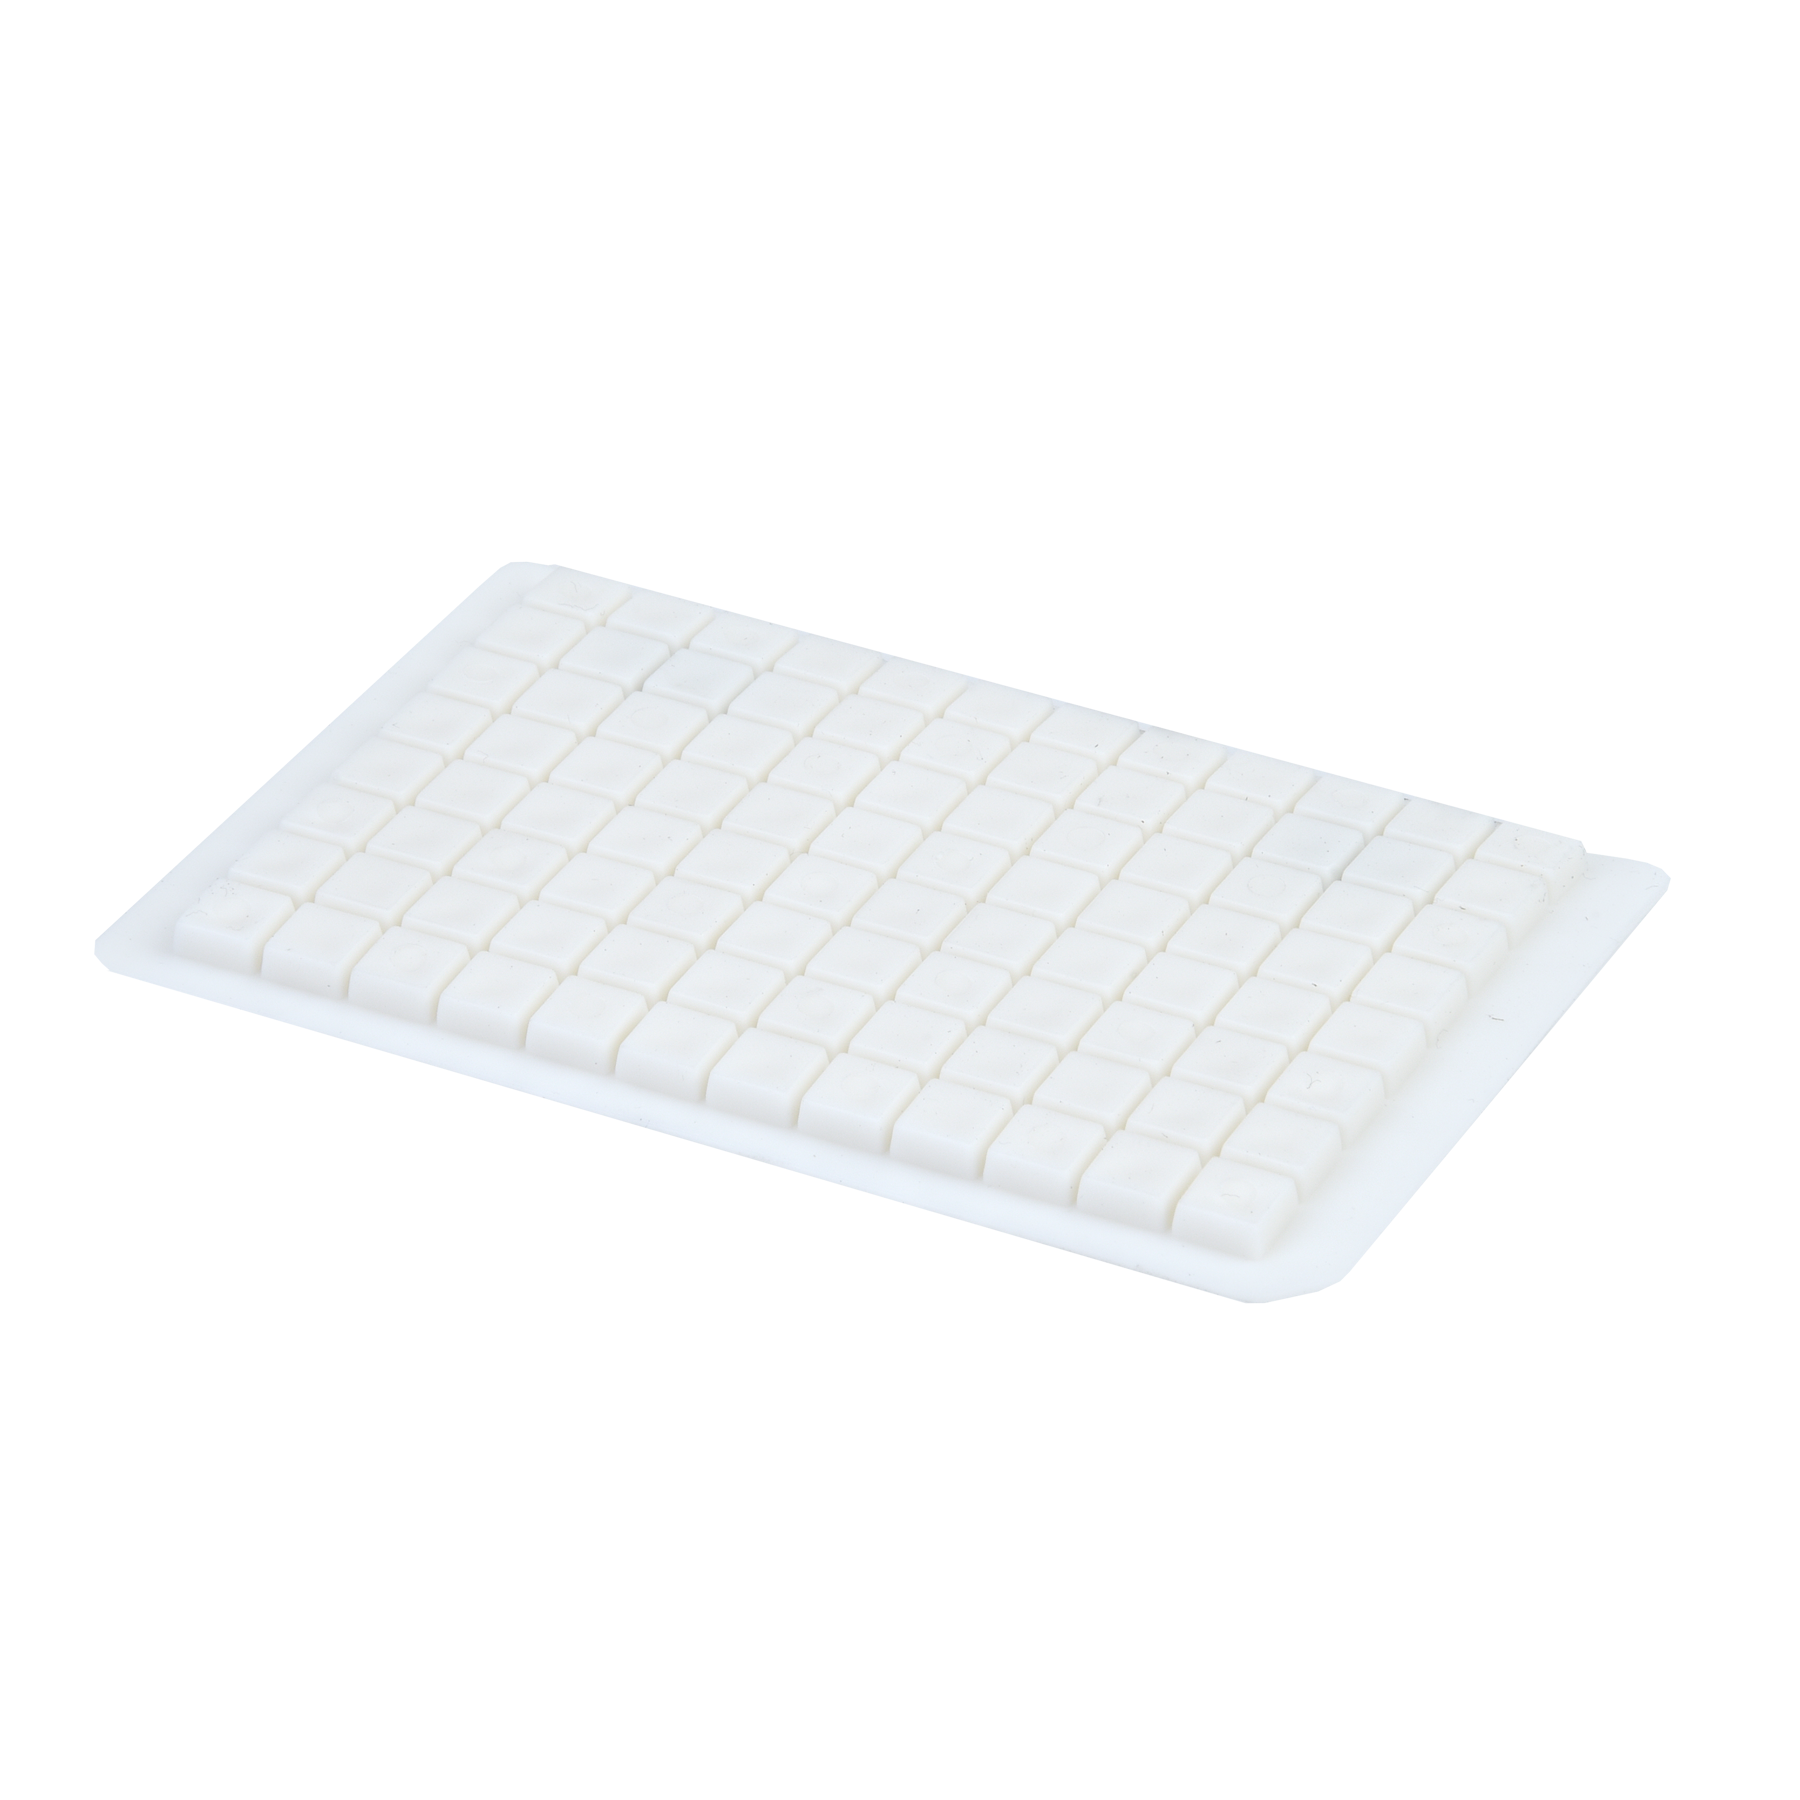 (2201-10) Cap-Mat for 2200 Titer Plate, Pack of 10